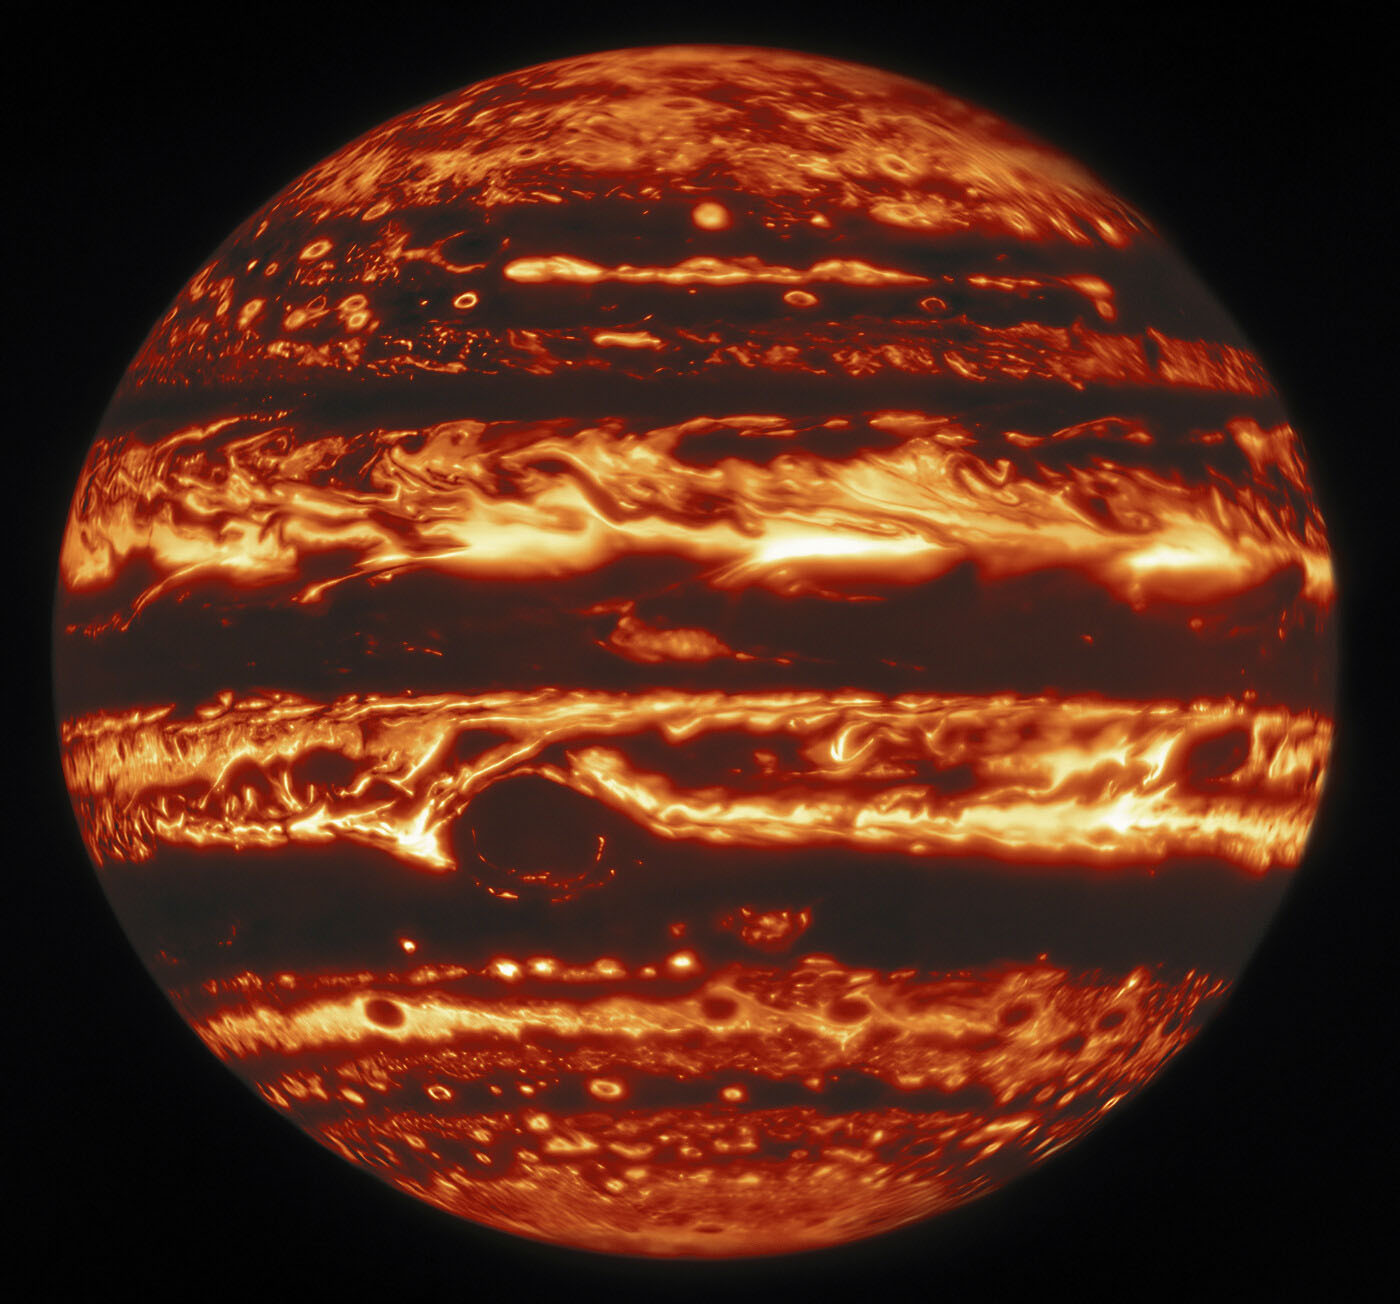 This infrared view of Jupiter was created from data captured on 11 January 2017 with the Near-InfraRed Imager (NIRI) instrument at Gemini North in Hawaiʻi, the northern member of the international Gemini Observatory, a Program of NSF's NOIRLab. It is actually a mosaic of individual frames that were combined to produce a global portrait of the planet. In the image warmer areas appear bright, including four large hot spots that appear in a row just north of the equator. South of the equator, the oval-shaped and cloud-covered Great Red Spot appears dark.